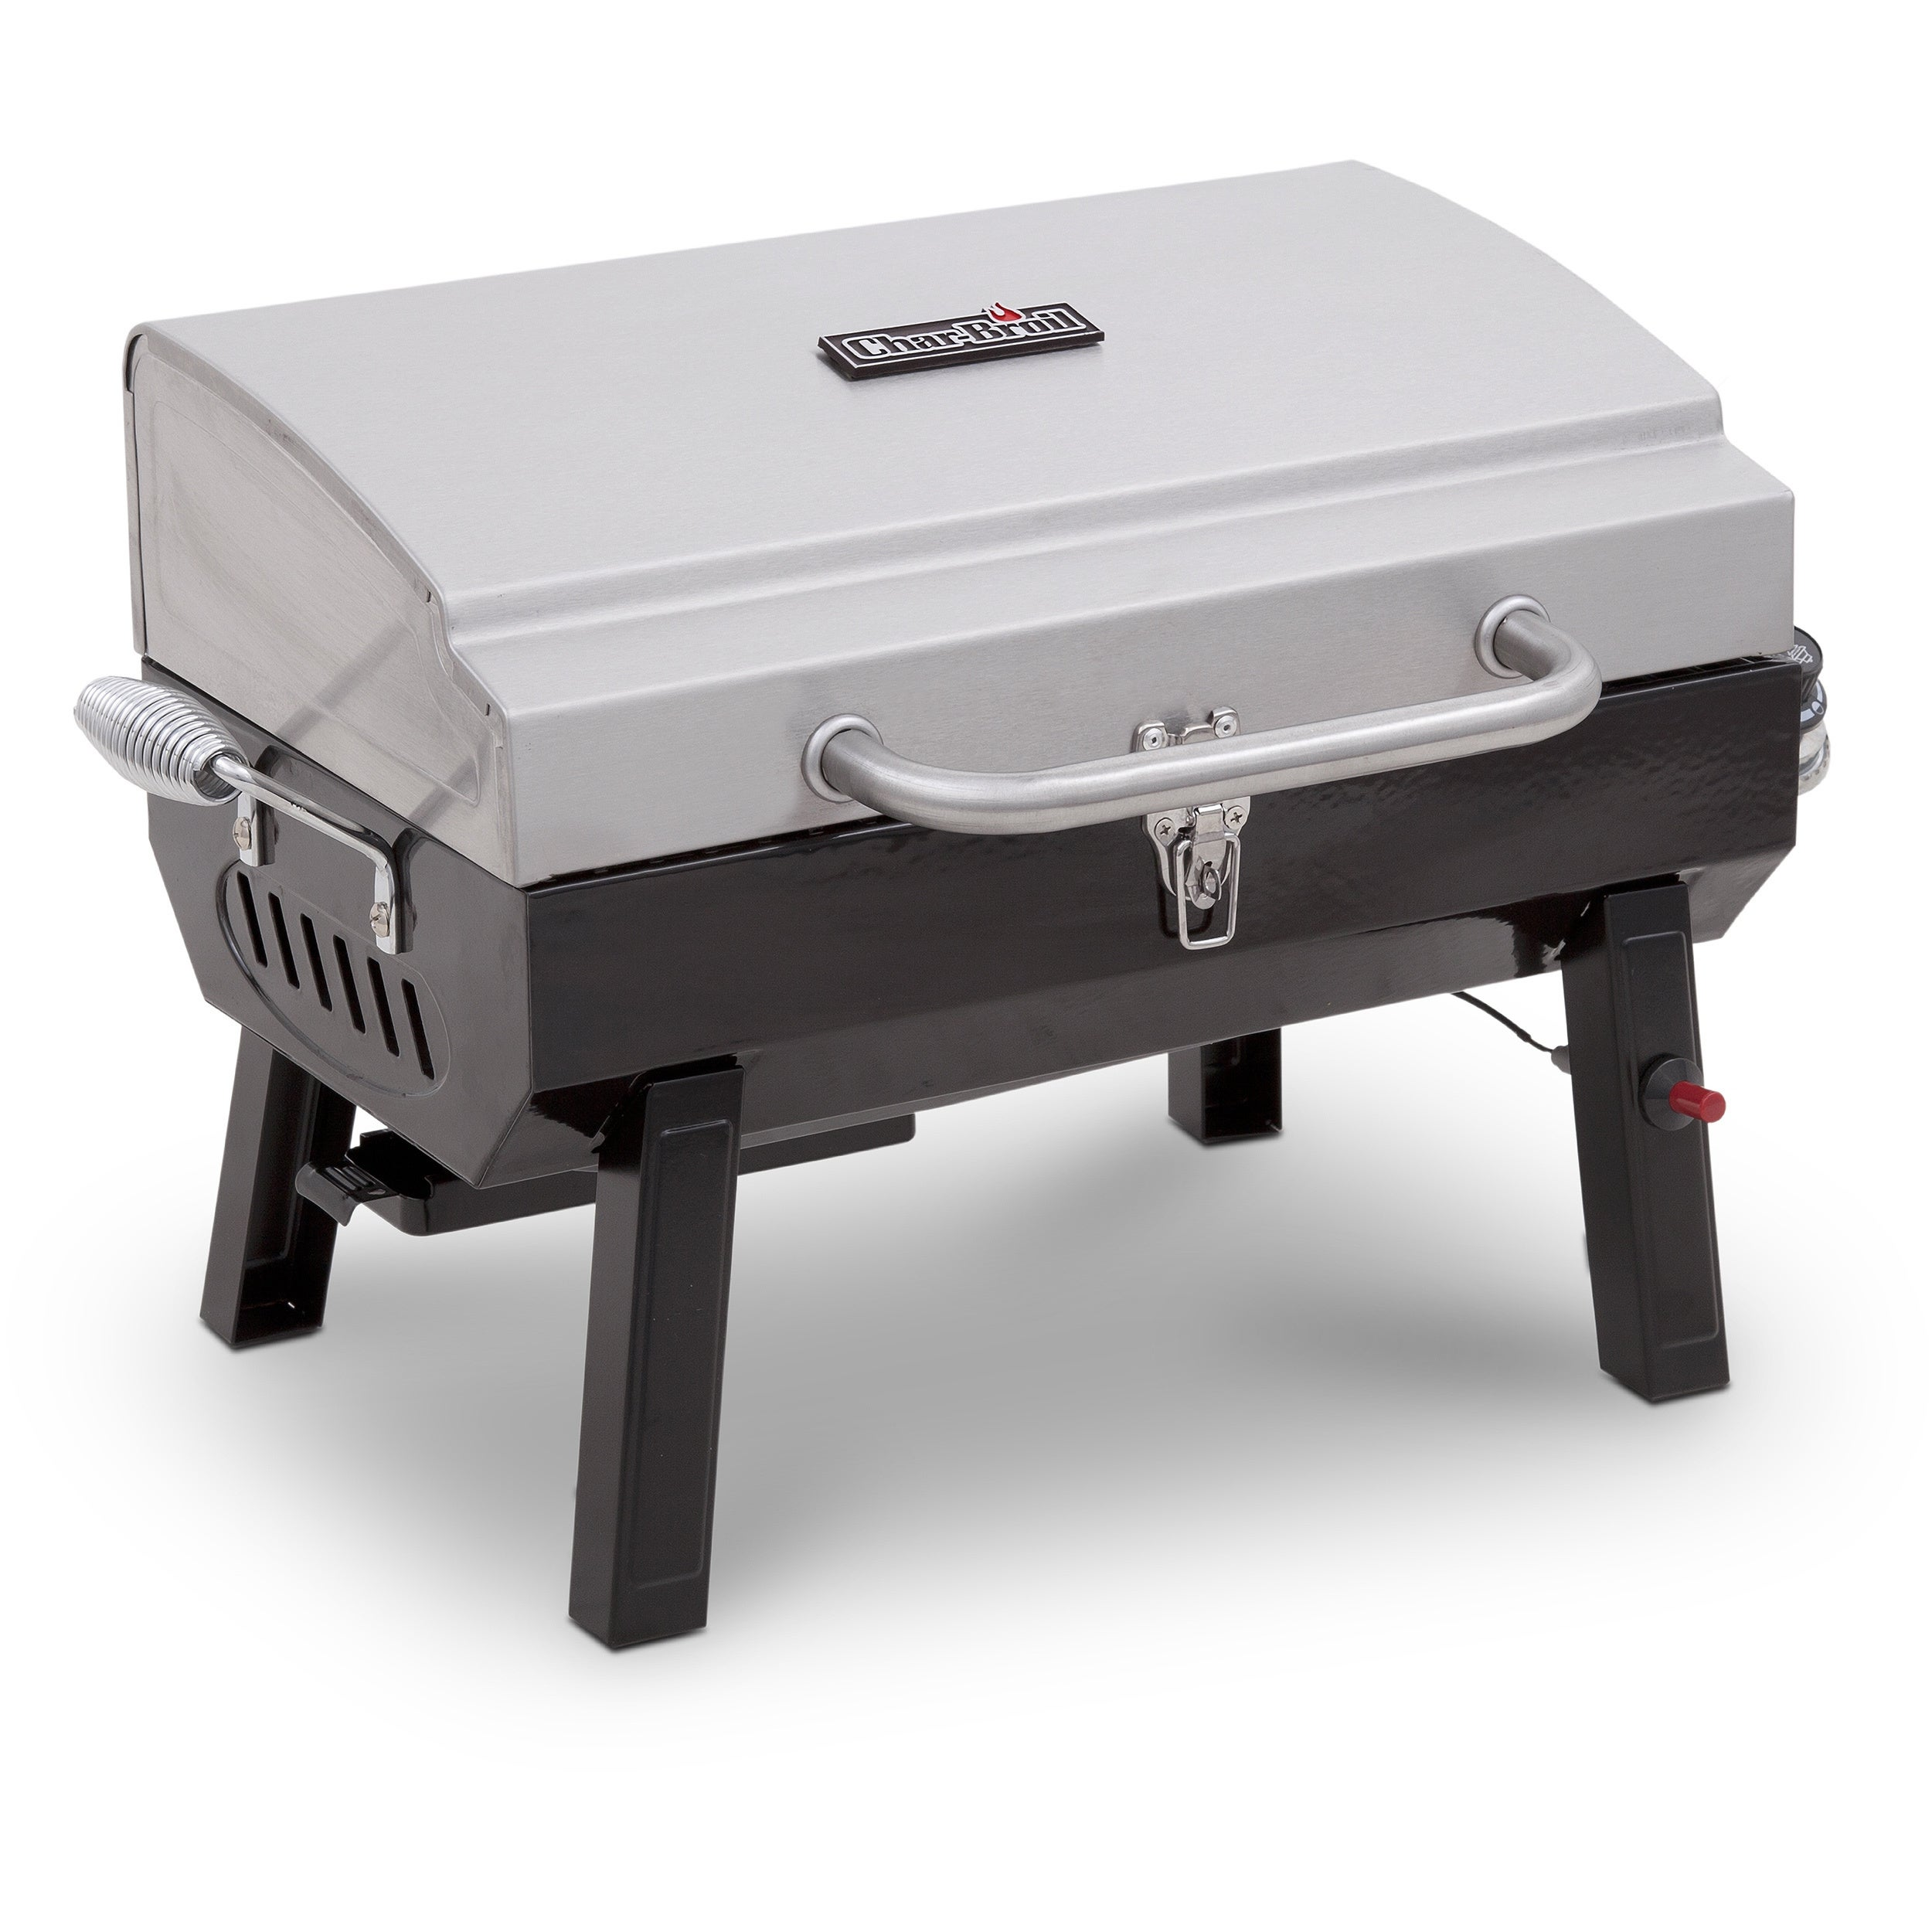 Char-Broil Gas Tabletop Grill, Silver stainless steel